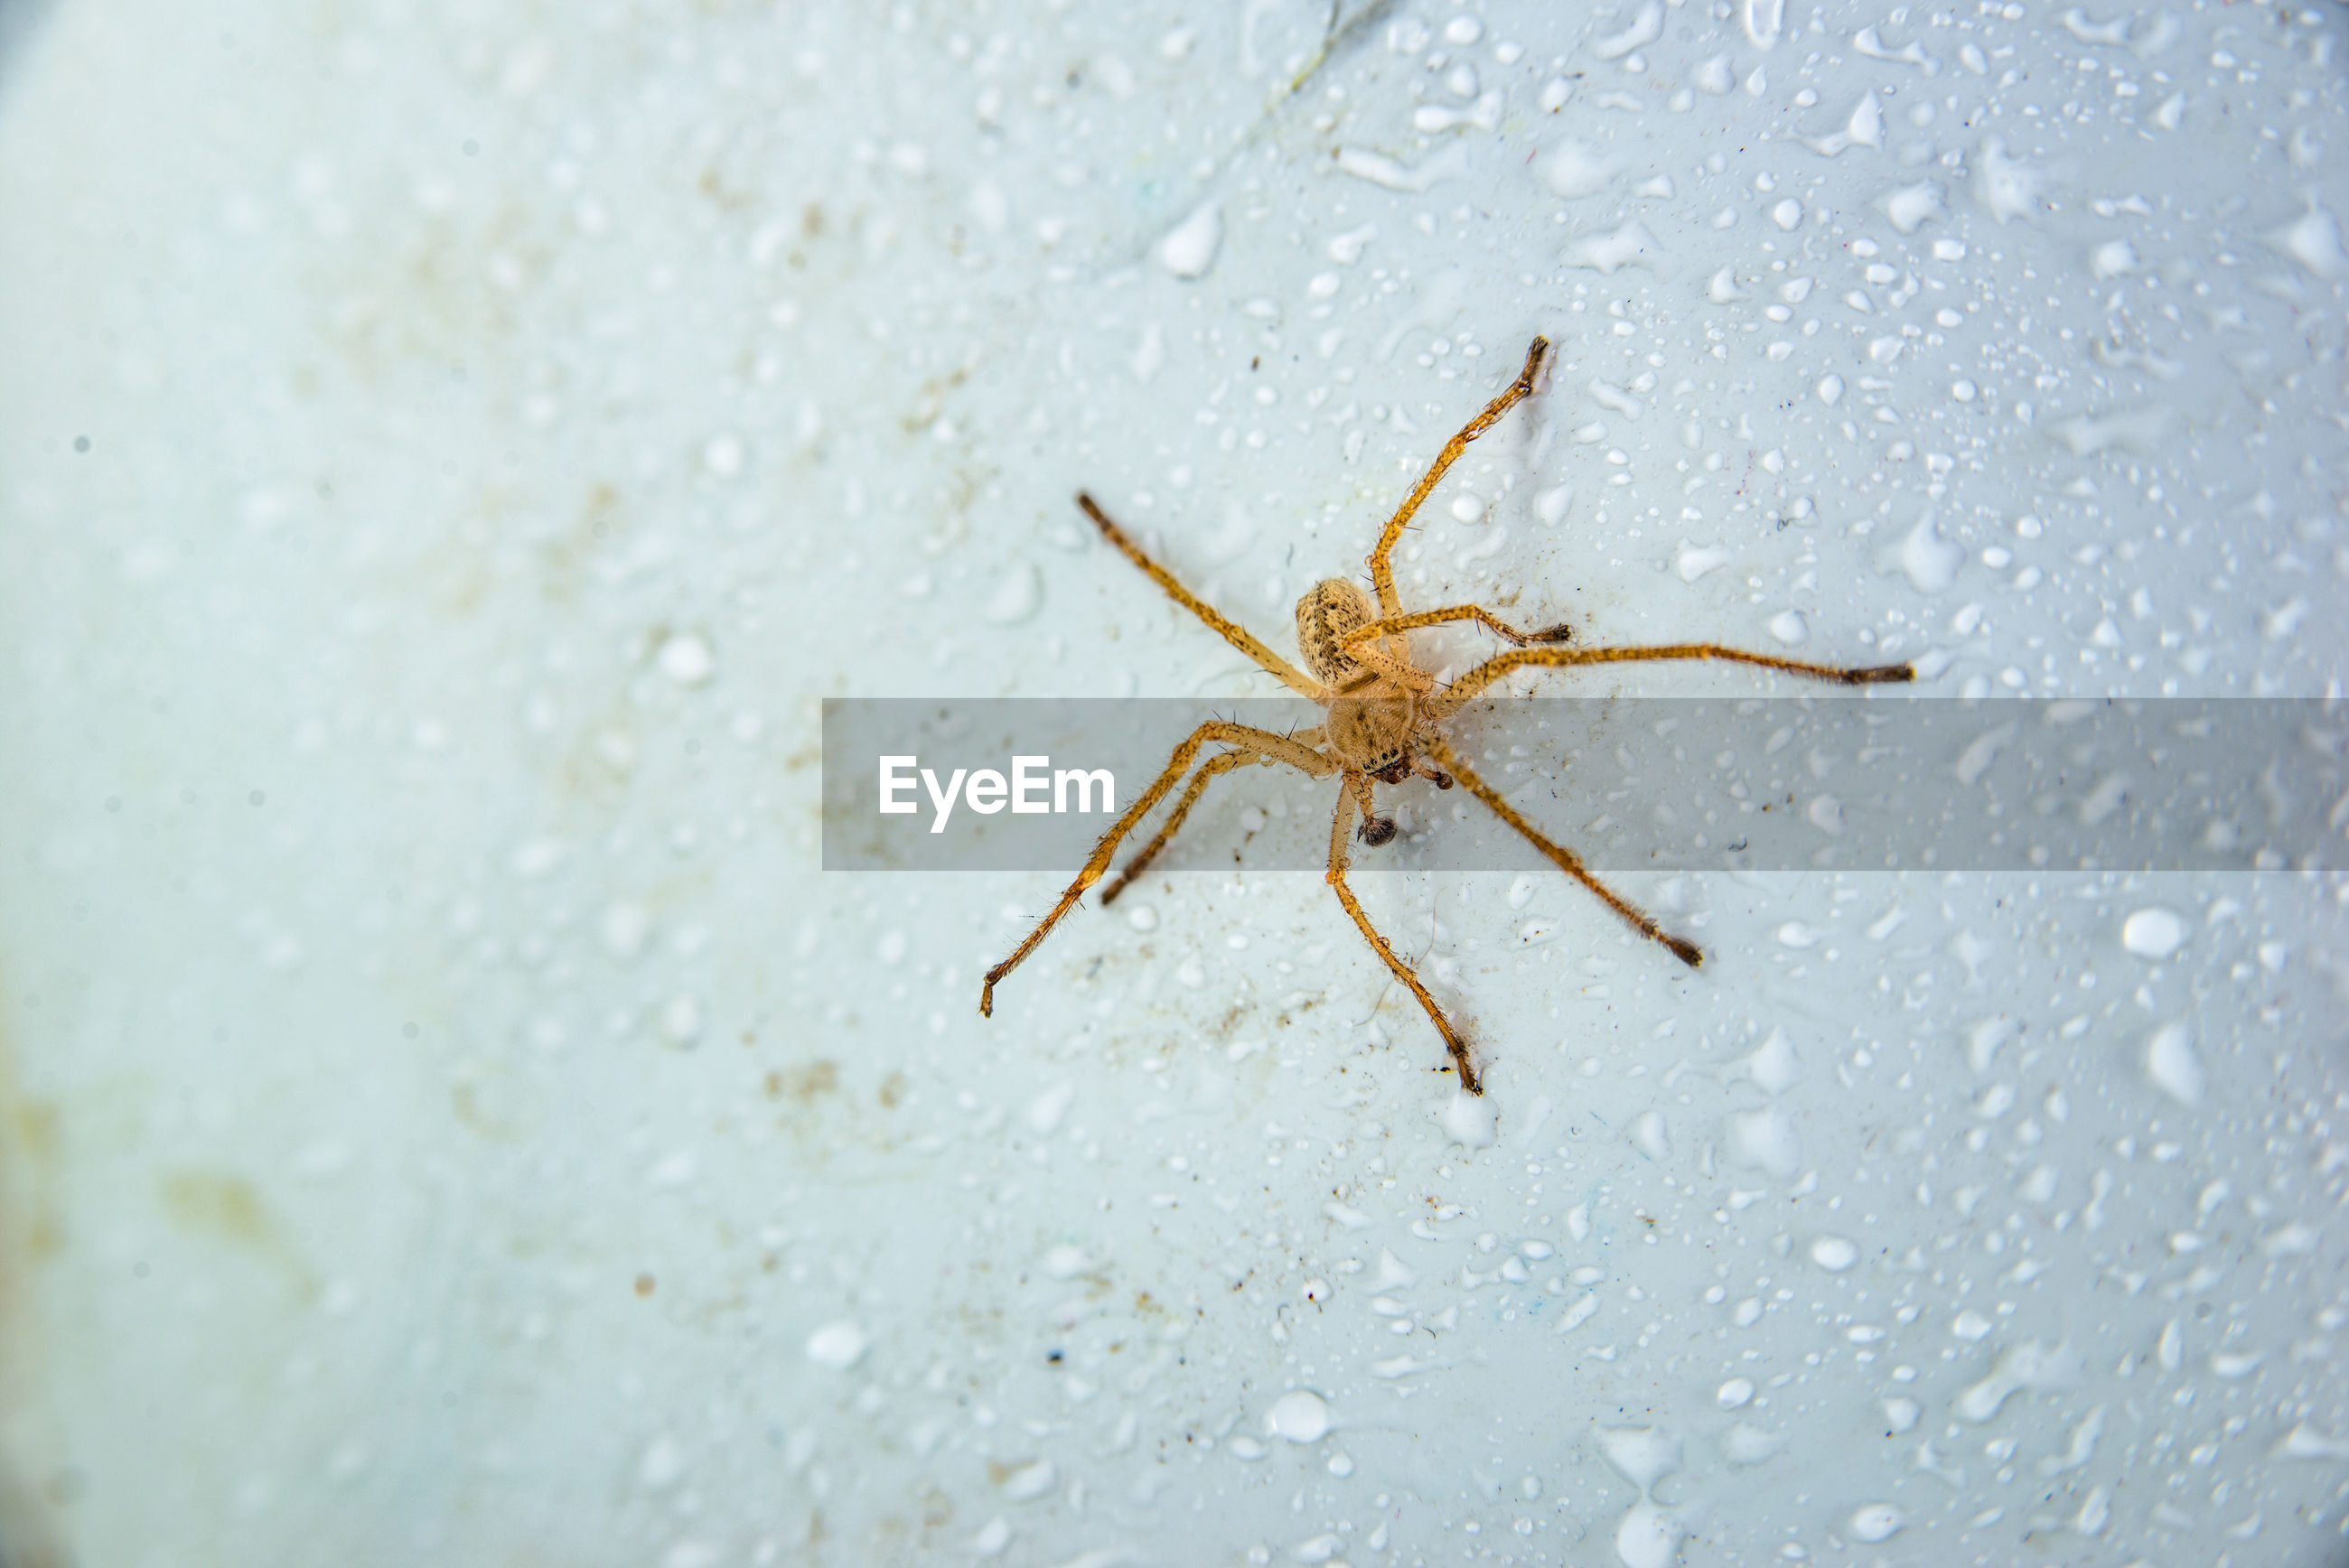 CLOSE-UP OF SPIDER ON THE GROUND